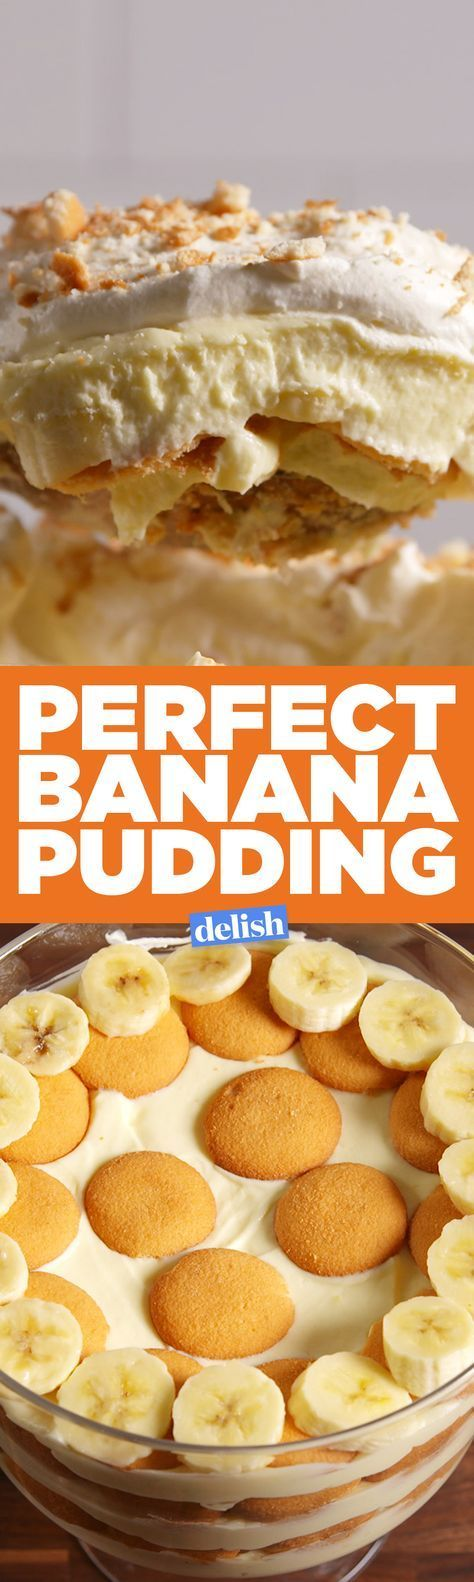 You'll go ape sh*t over this perfect banana pudding. Get the recipe on Delish.com.